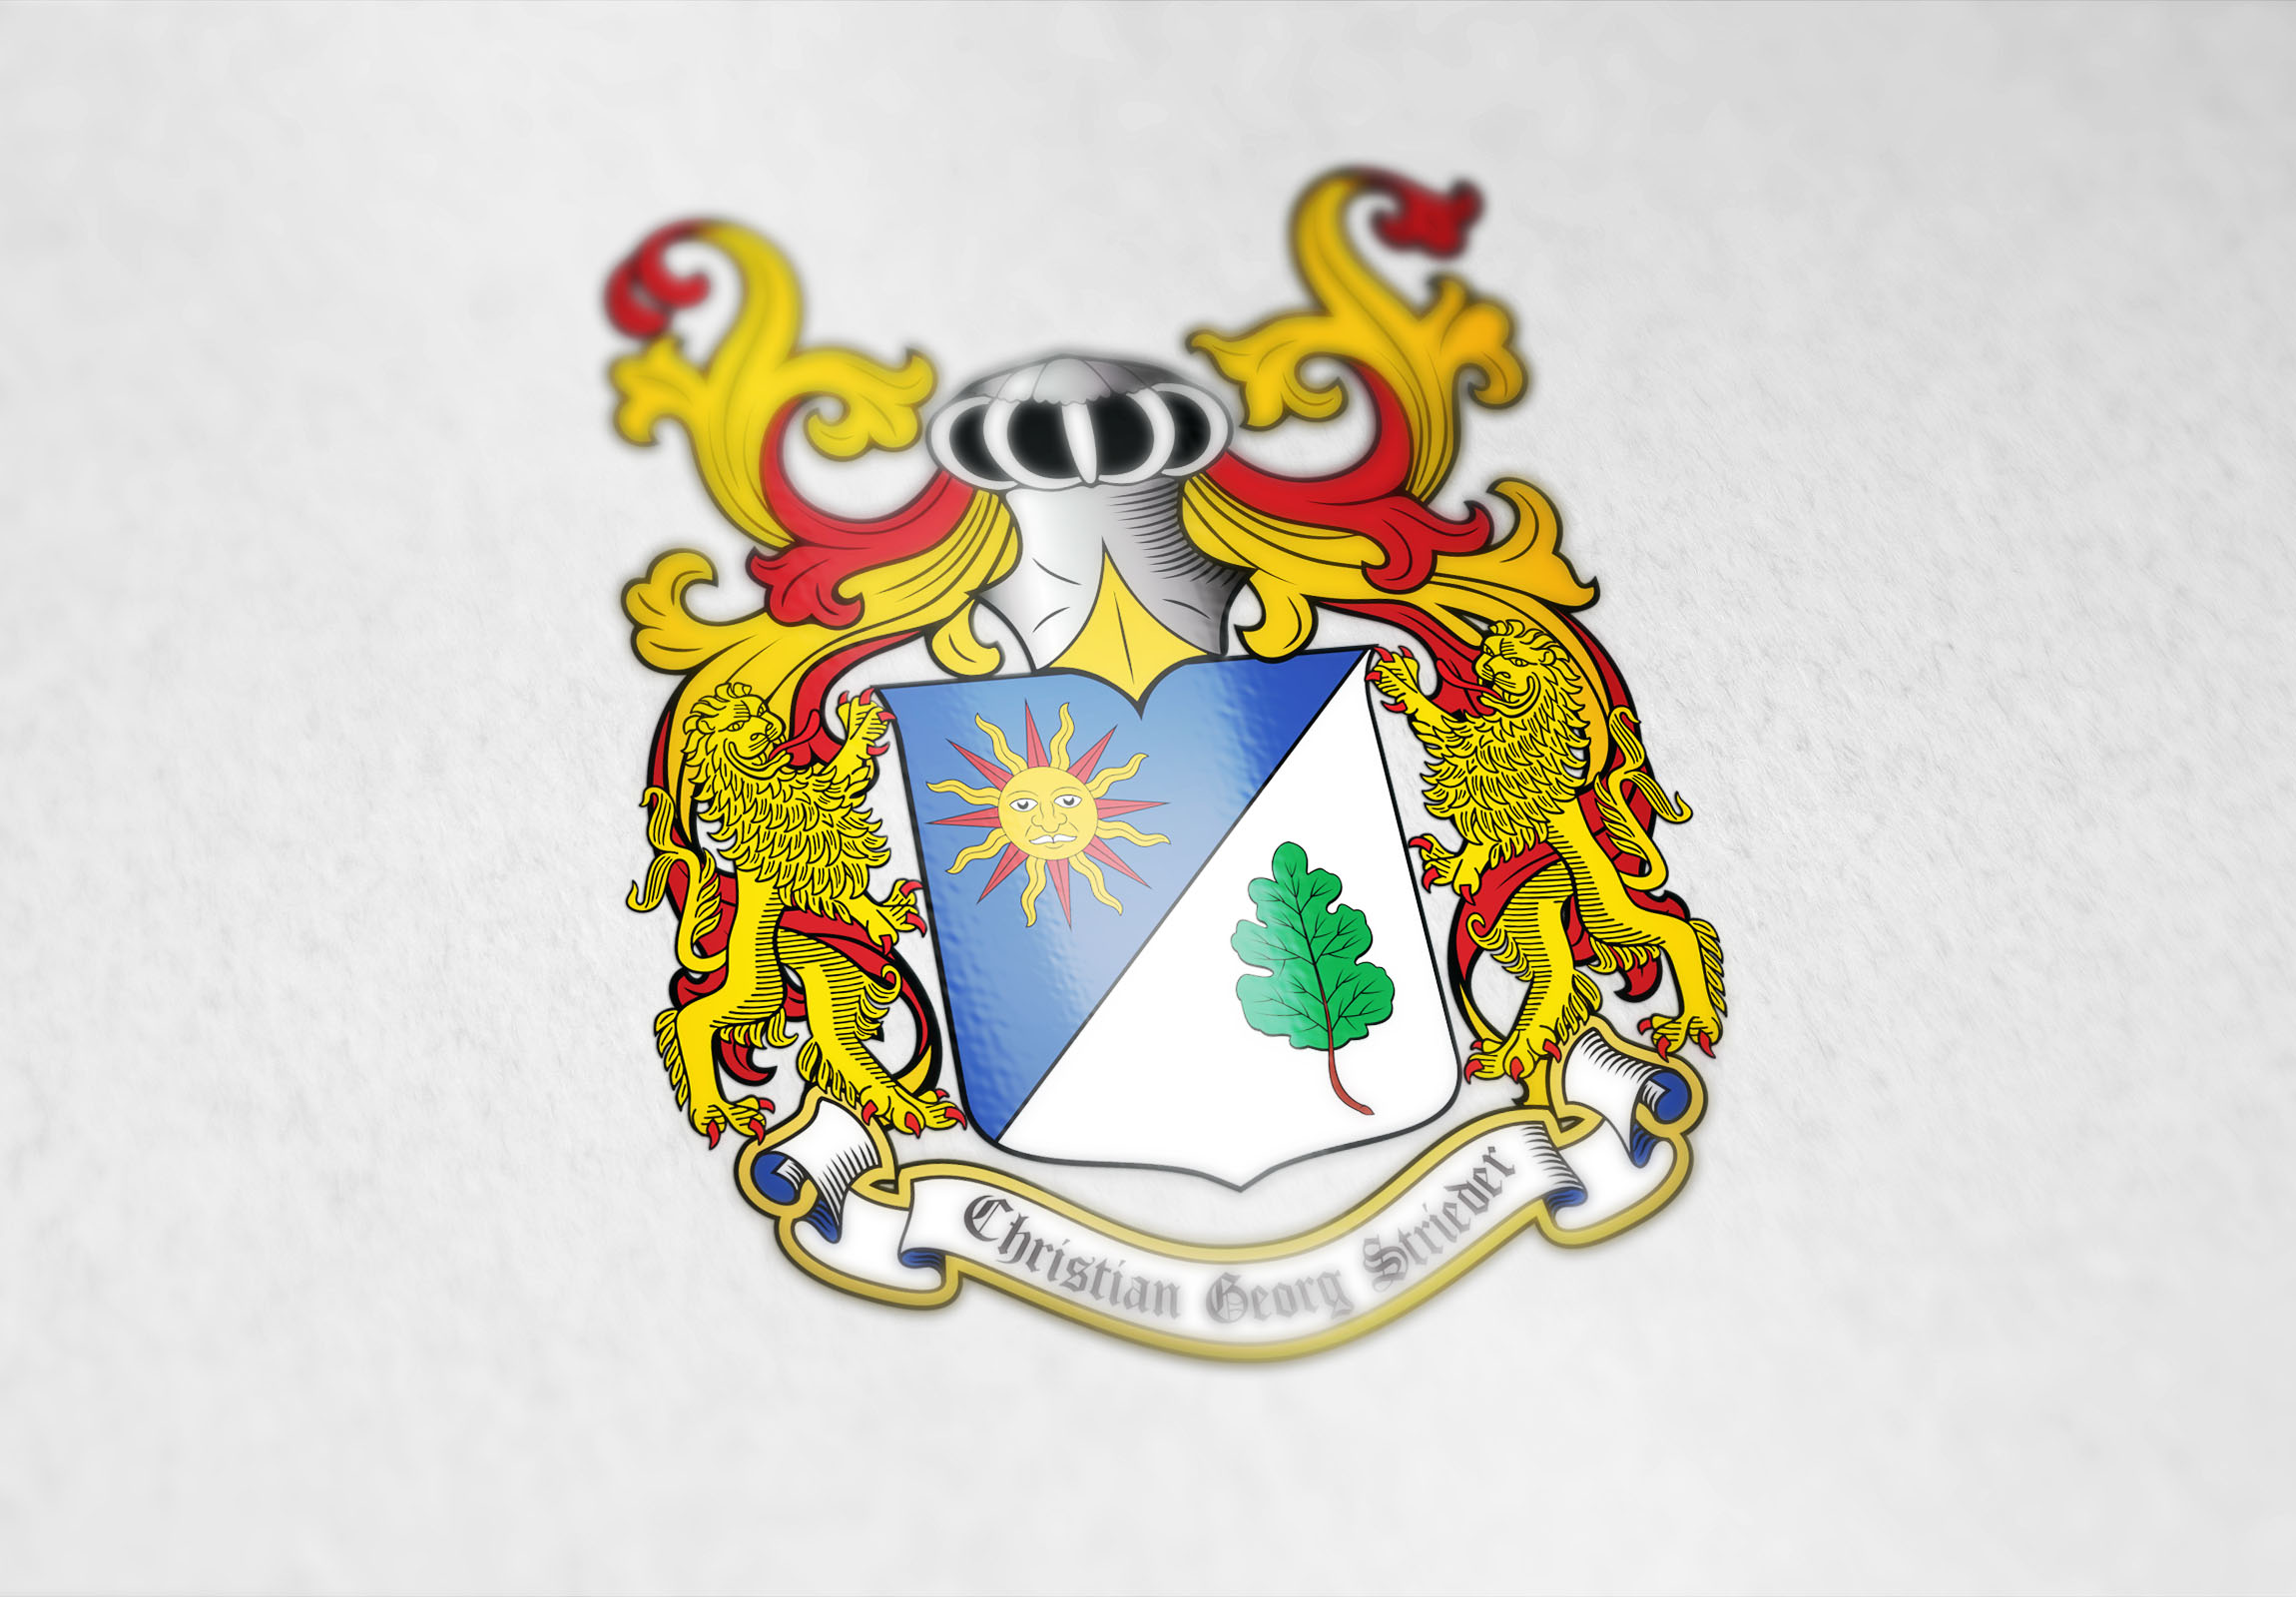 Coat of arms designed for the Strieder family from Australia